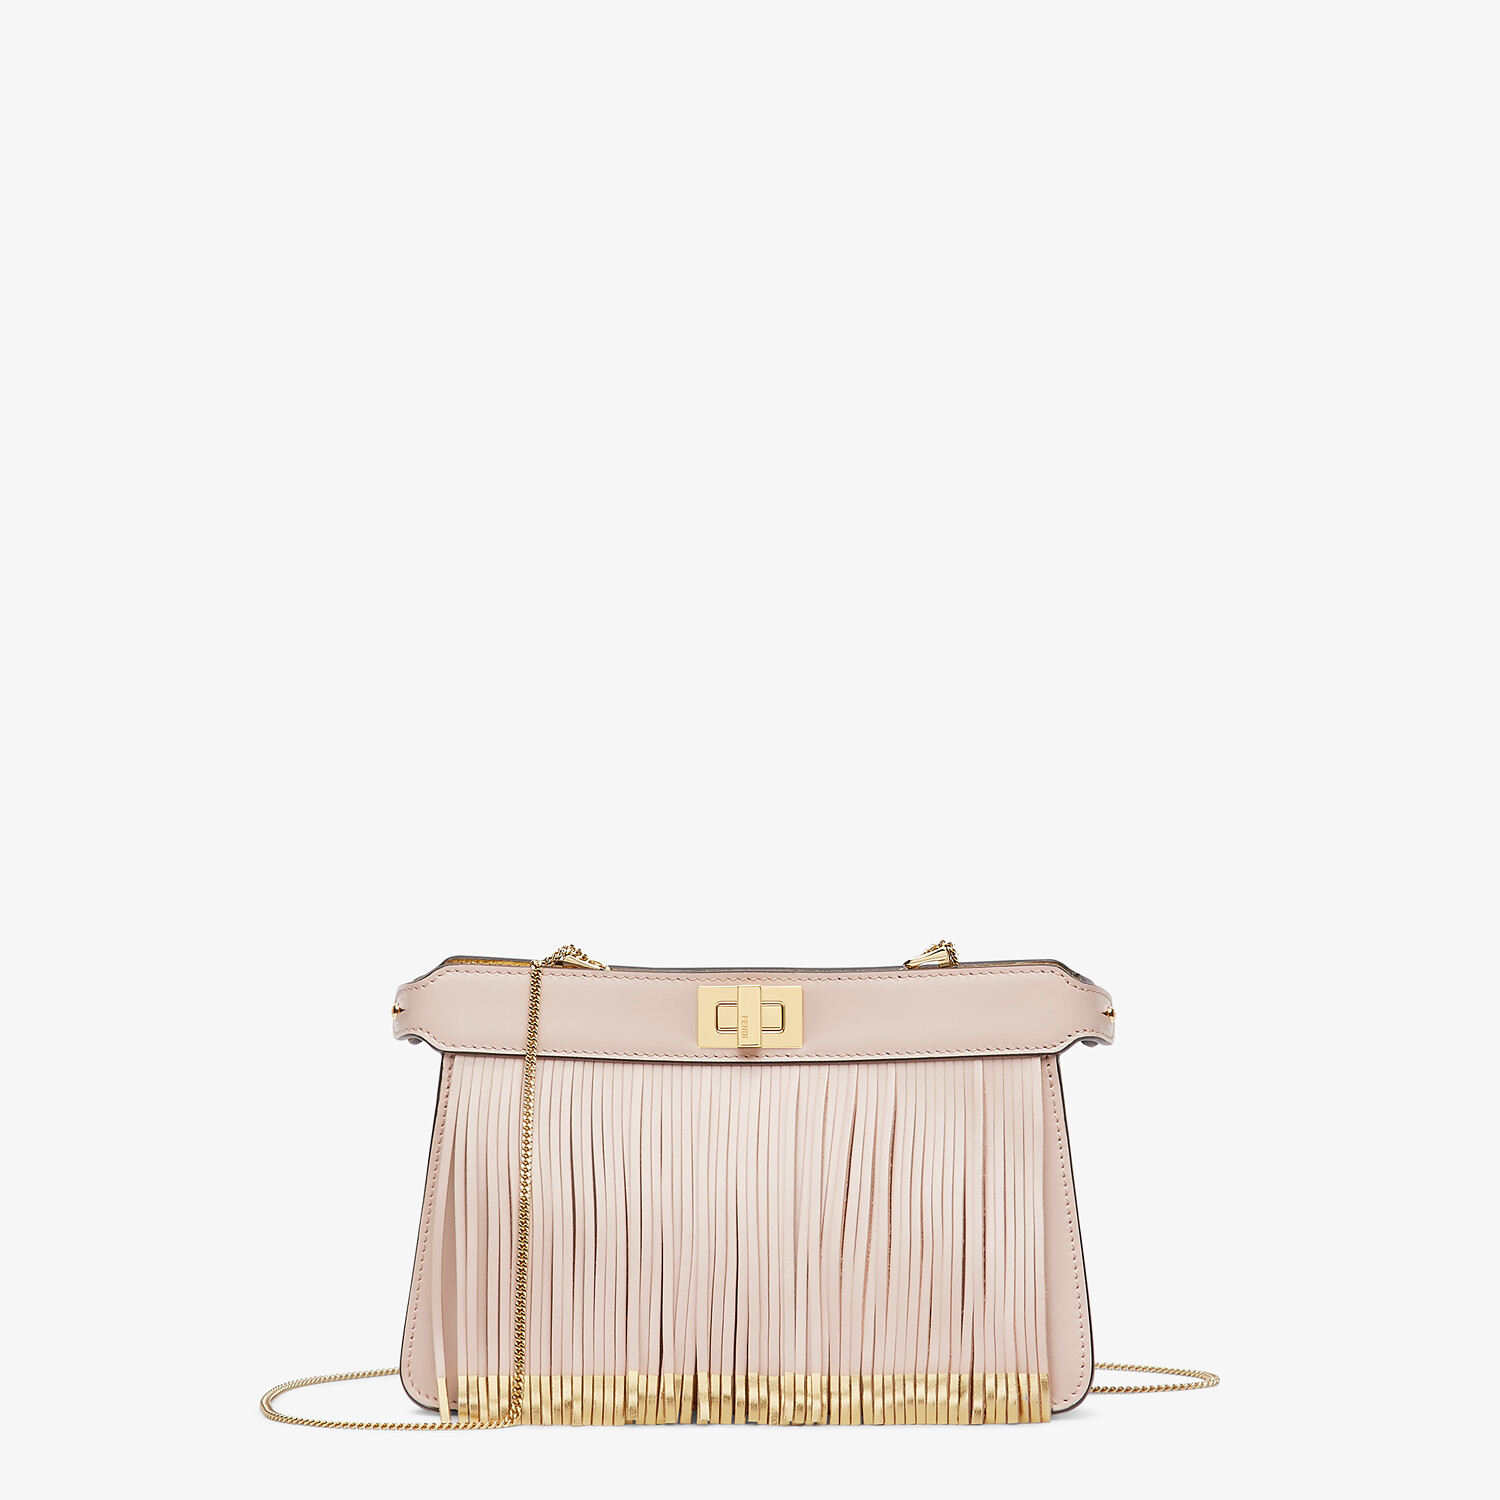 FENDI PEEKABOO I SEE U POCHETTE - Pink leather bag with fringes - view 1 detail